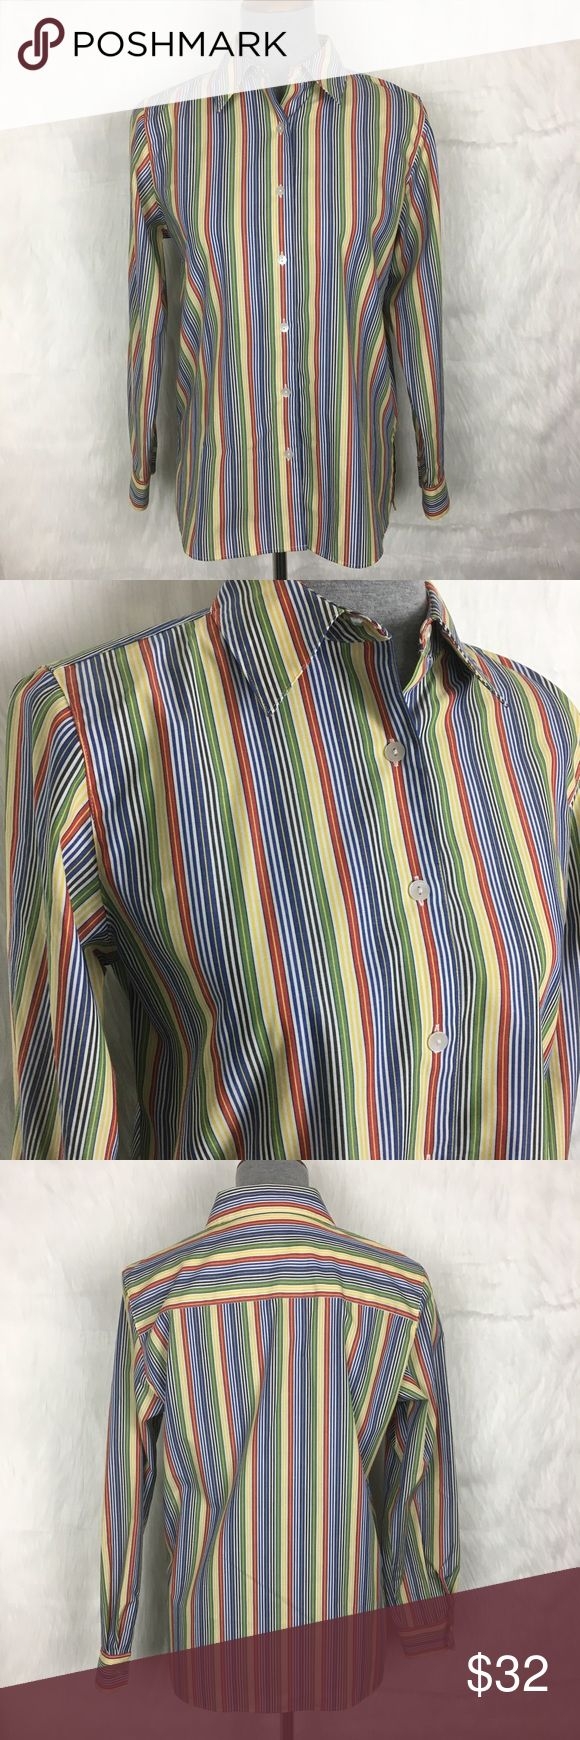 """Foxcroft No Wrinkle Stripe Multi Color Button Down foxcroft wrinkle free stripe button down blouse. multi color rainbow palette. the fit is oversized, perfect to tuck in to trousers / jeans. fashion forward career wear!  size: 6 petite measurements: bust 20"""" across / waist 19.5"""" across / length 25"""" / sleeeve inseam 18"""" fabric content: 60% cotton, 40% polyester flaws: none mannequin's measurements: 34-26-35 discounts: 10% off bundles of 2 items and 15% off bundles of 3+ items Foxcroft Tops…"""